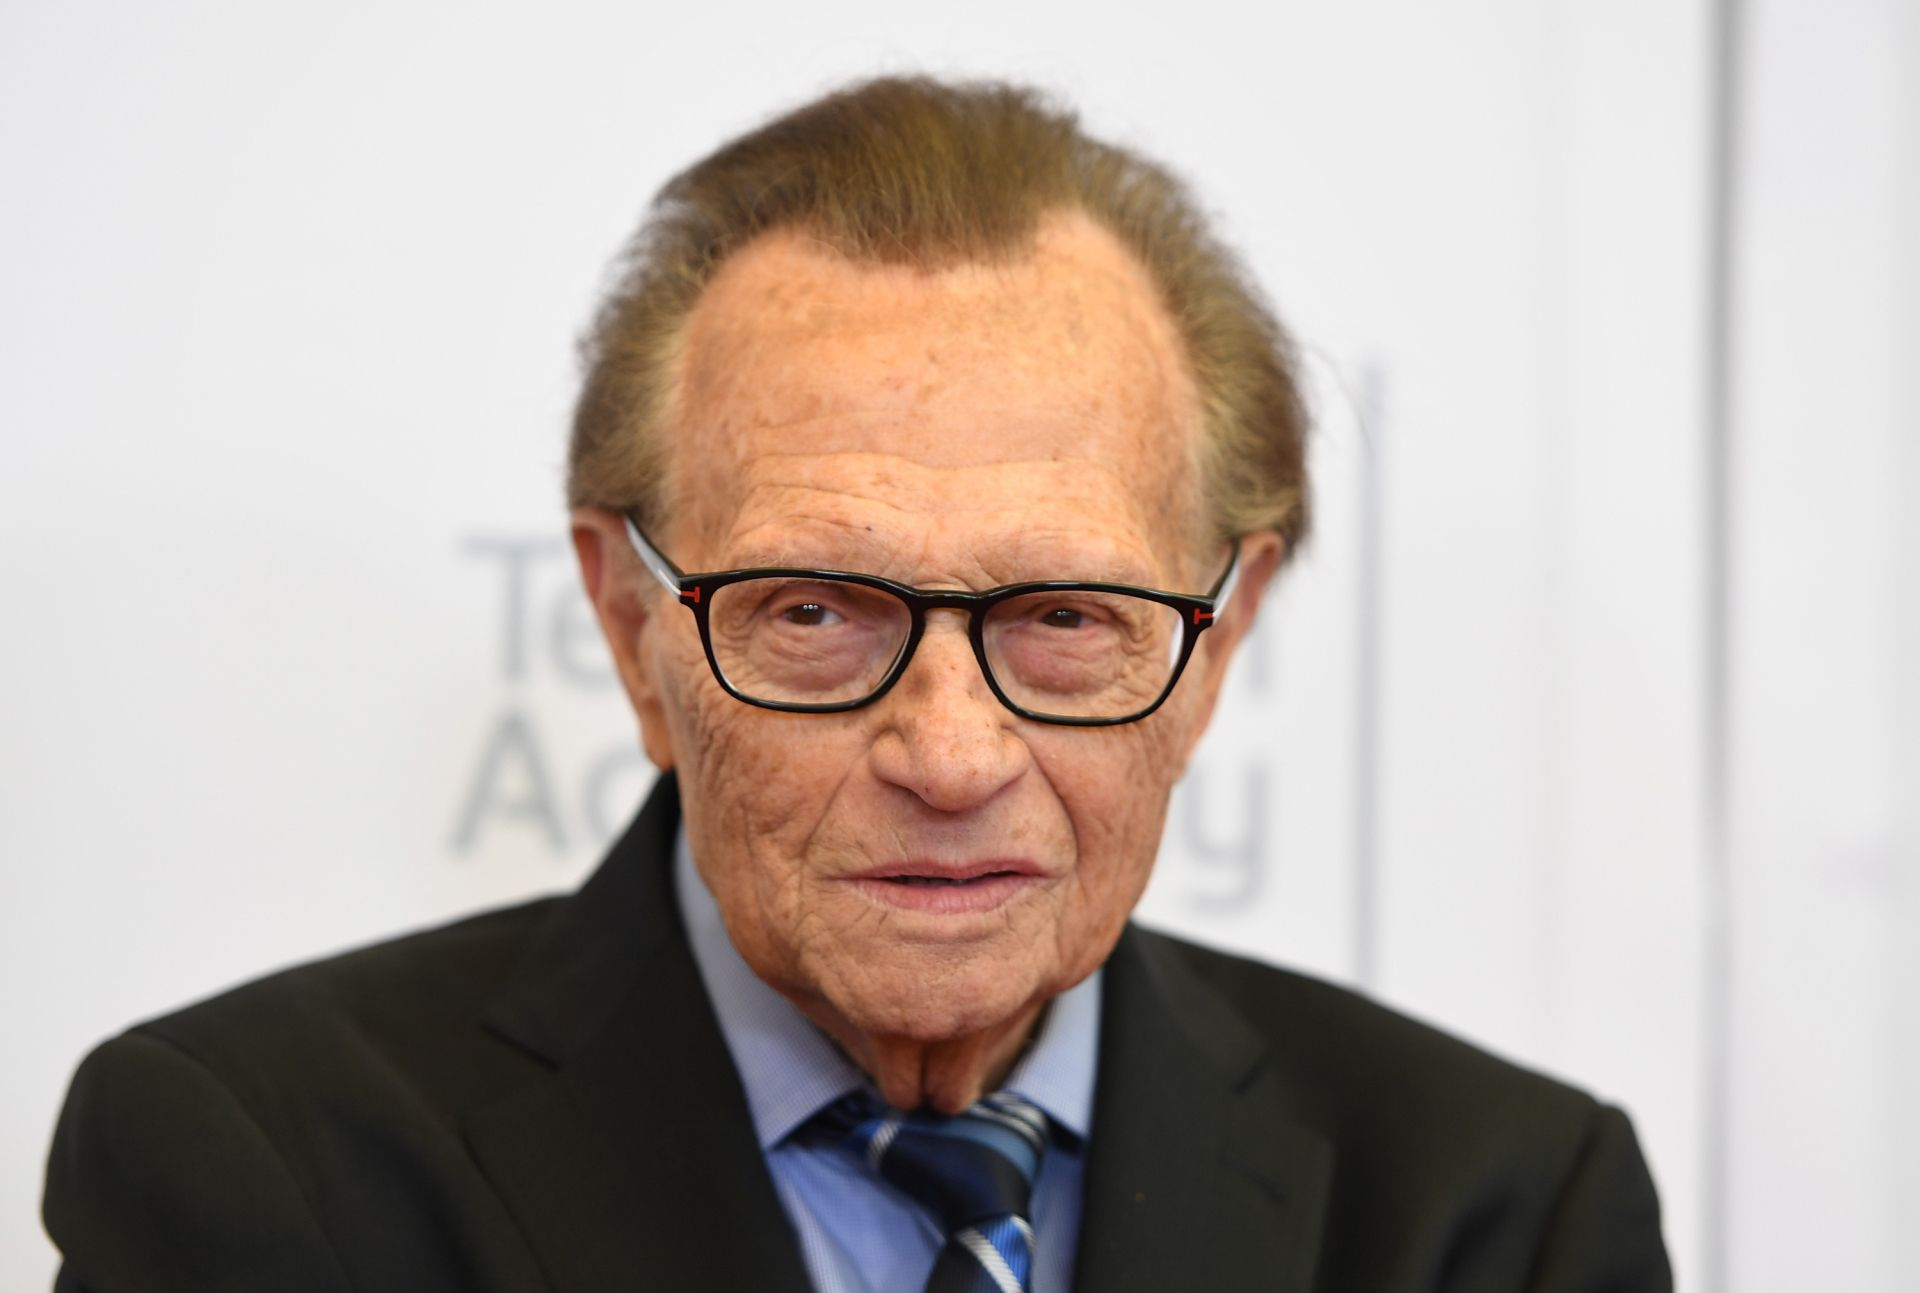 Television Host Larry King arrives on the red carpet for the 68th Los Angeles Emmy Awards featuring Niecy Nash, Jason George, Mary Holland, Florence Henderson and Larry King in North Hollywood, California, on July 23, 2016. -  (Photo by Angela WEISS / AFP)